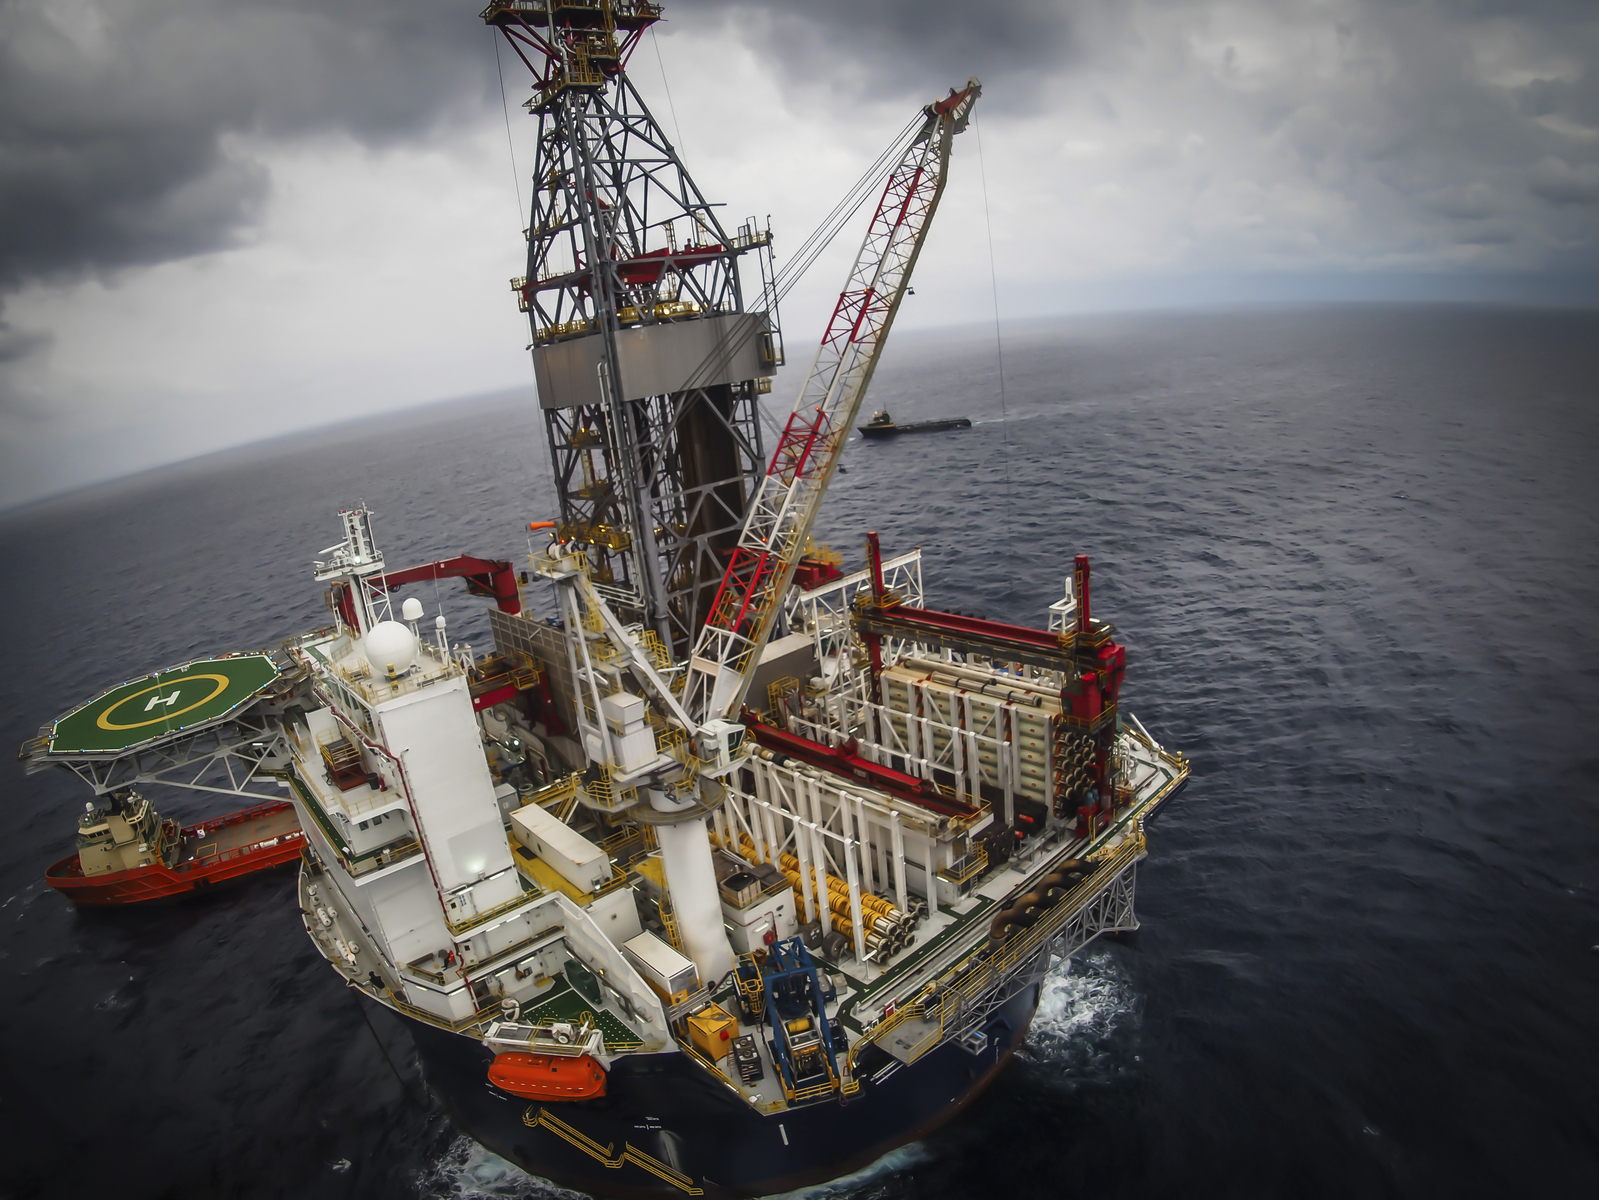 Offshore oil drilling rig in the North Sea (photo: iStoc)